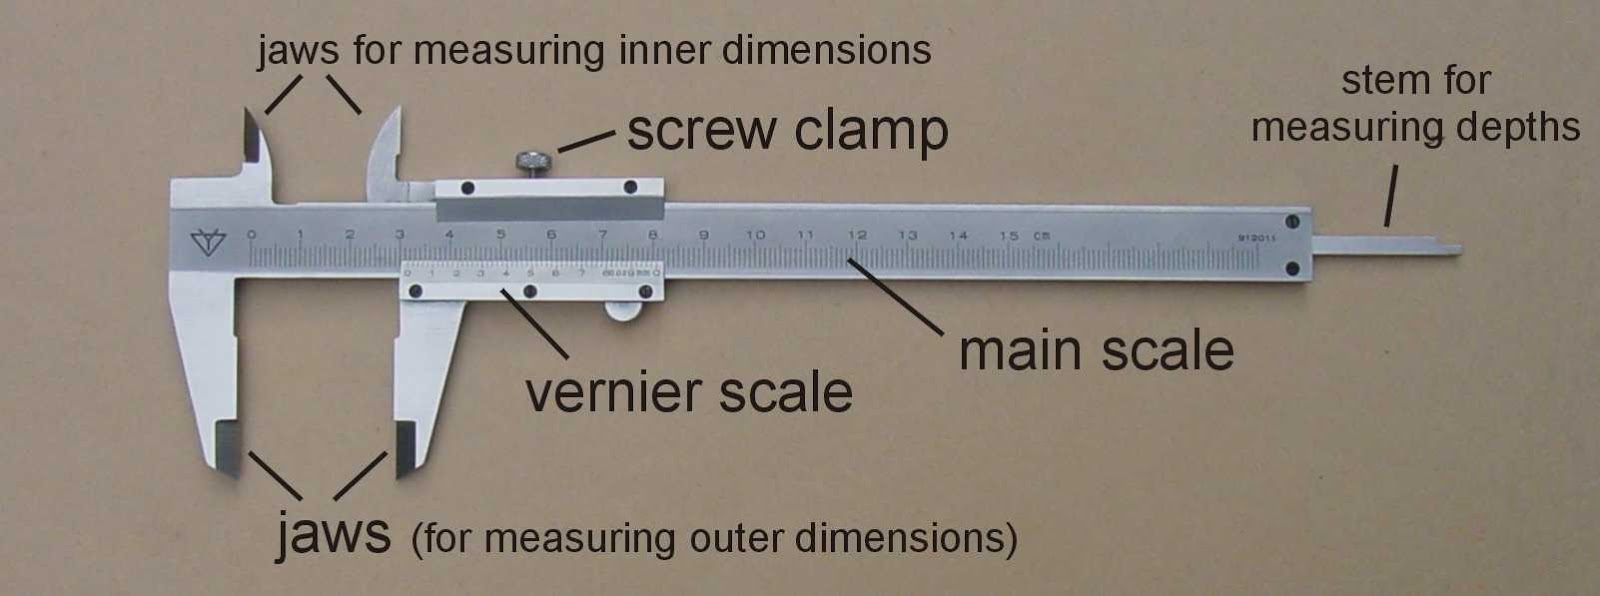 Vernier Caliper Micrometer And Other Length Measuring Devices